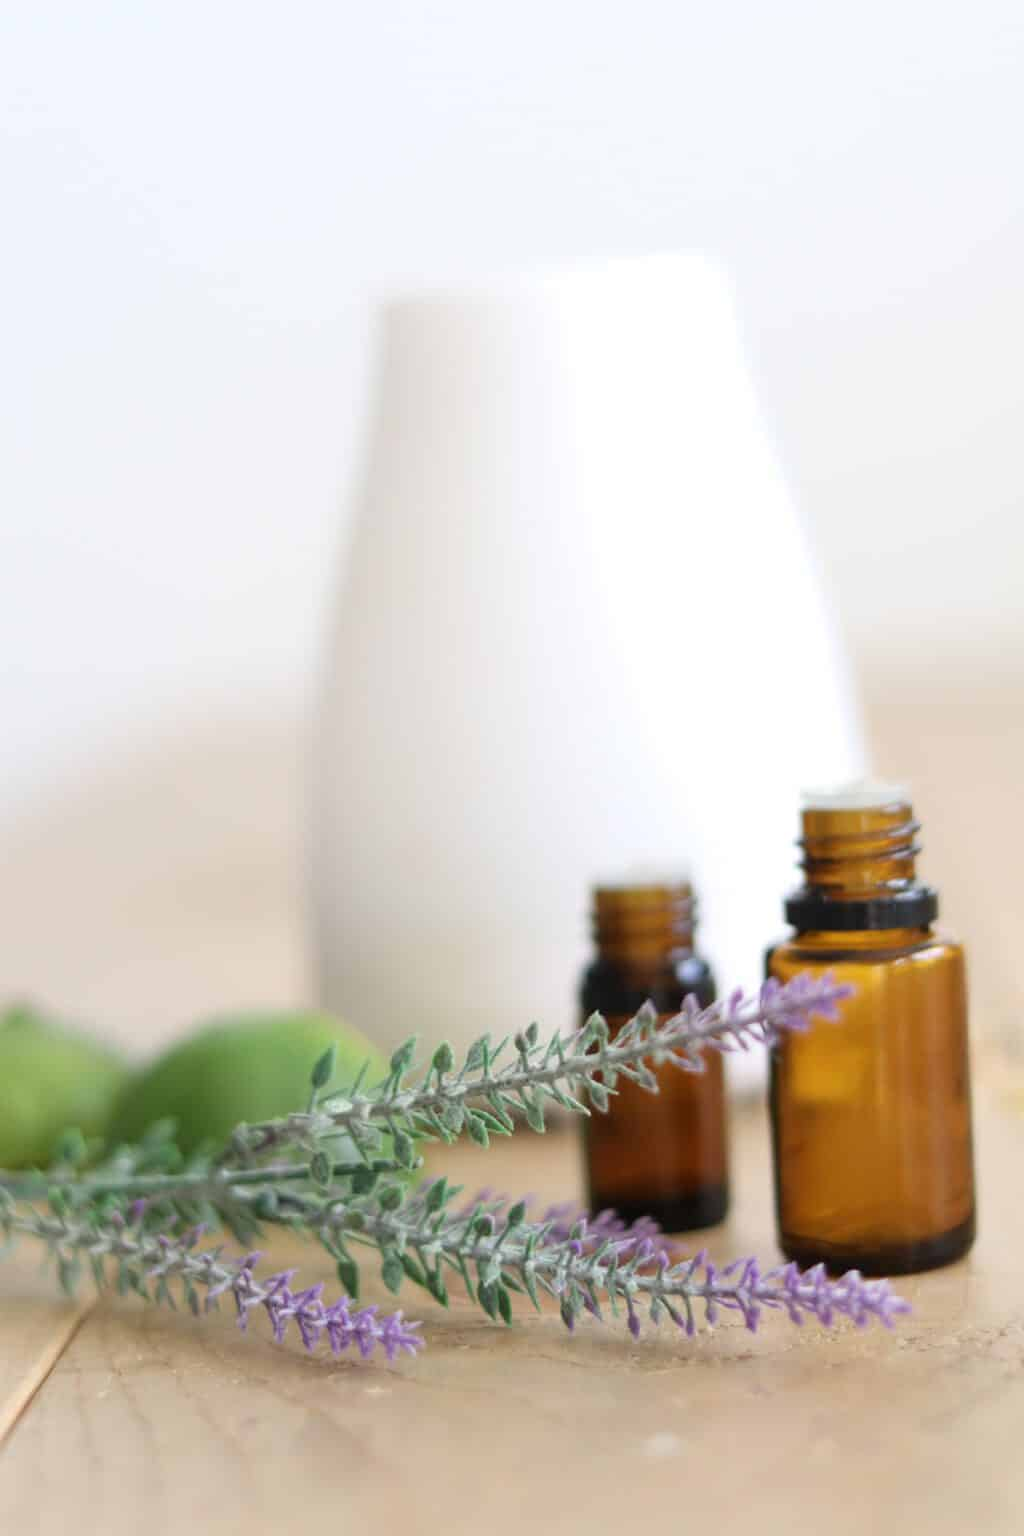 Essential oils for stress, anxiety, anger, fear, worry, and loneliness. Using aromatherapy for natural mood support.